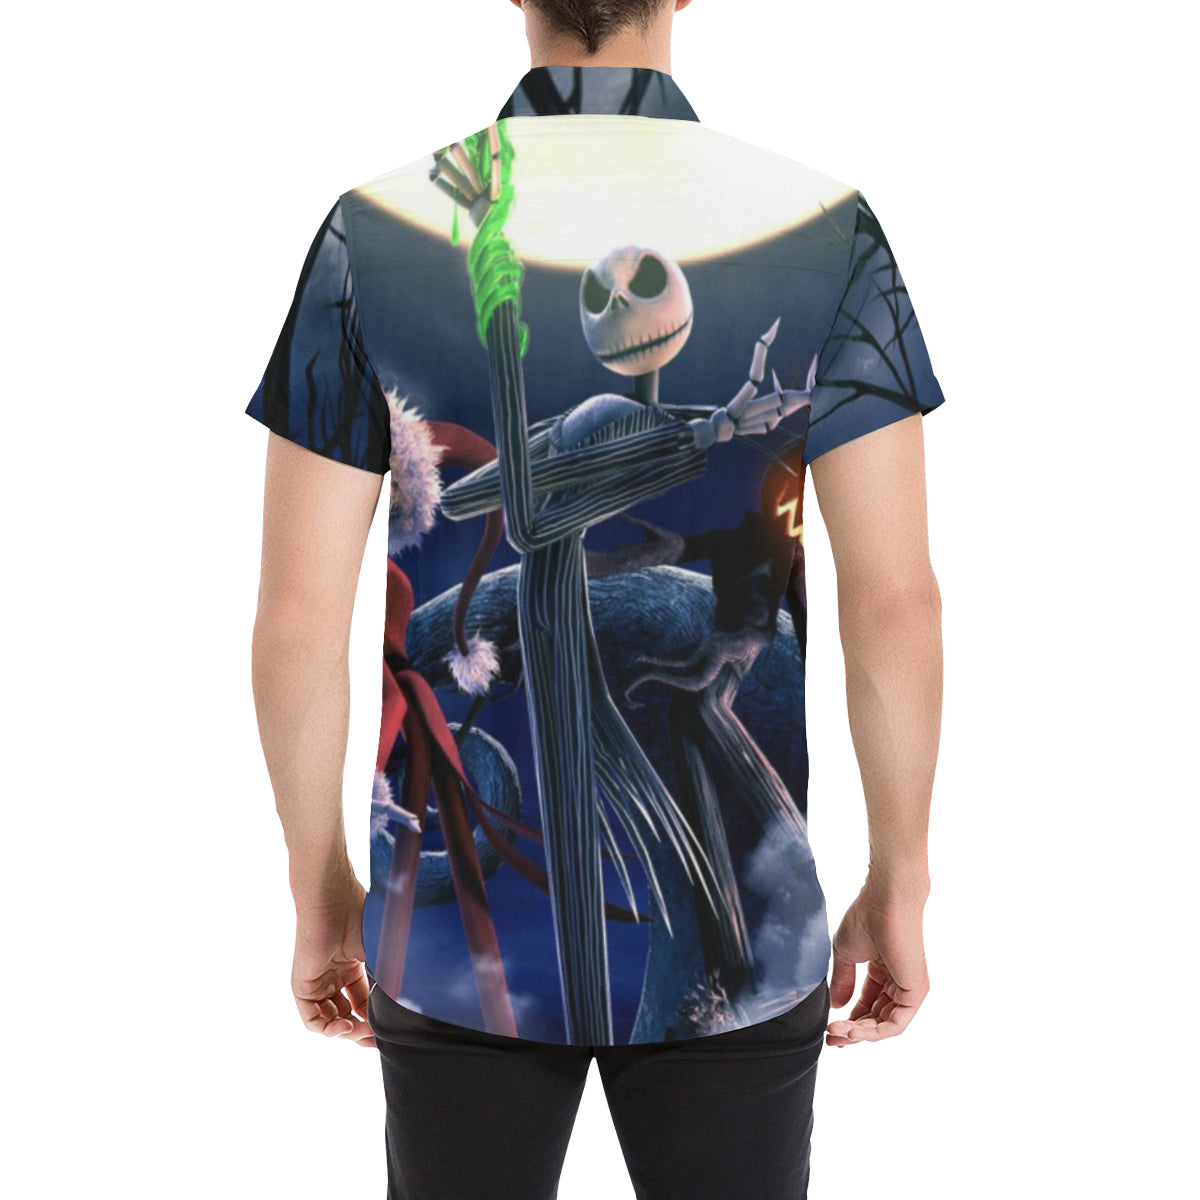 The Nightmare Before Christmas #1 - Men\'s Short Sleeve Shirt - MyStorify